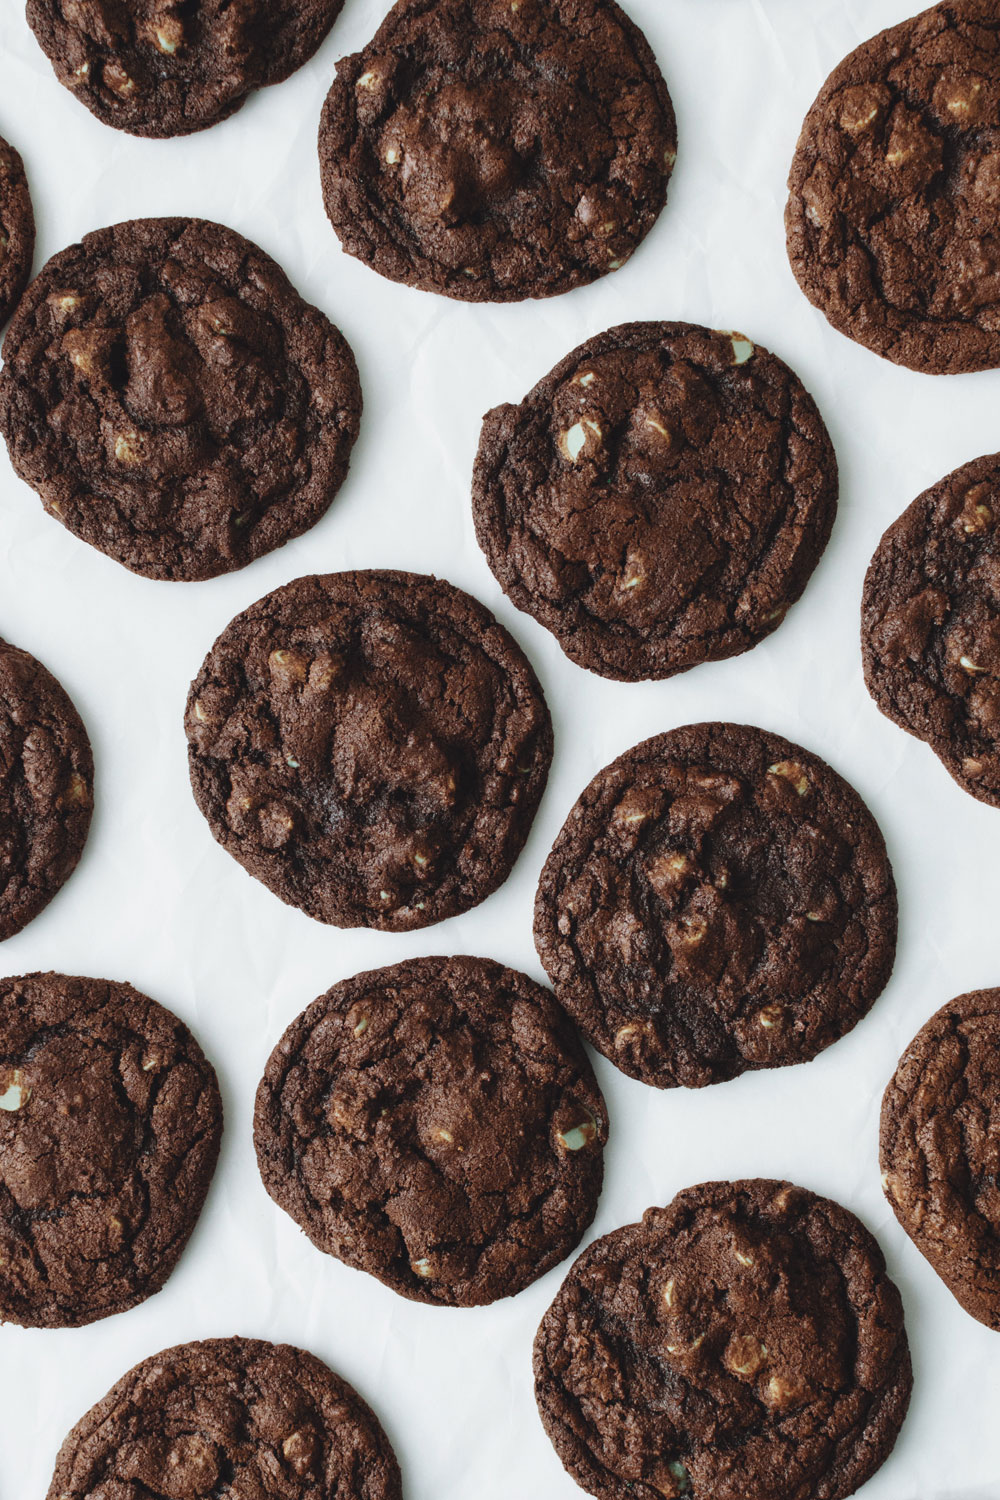 CHOCOLATE MINT CHIP COOKIES - rich Valrhona chocolate cookies studded with Guittard mint chips$1.85